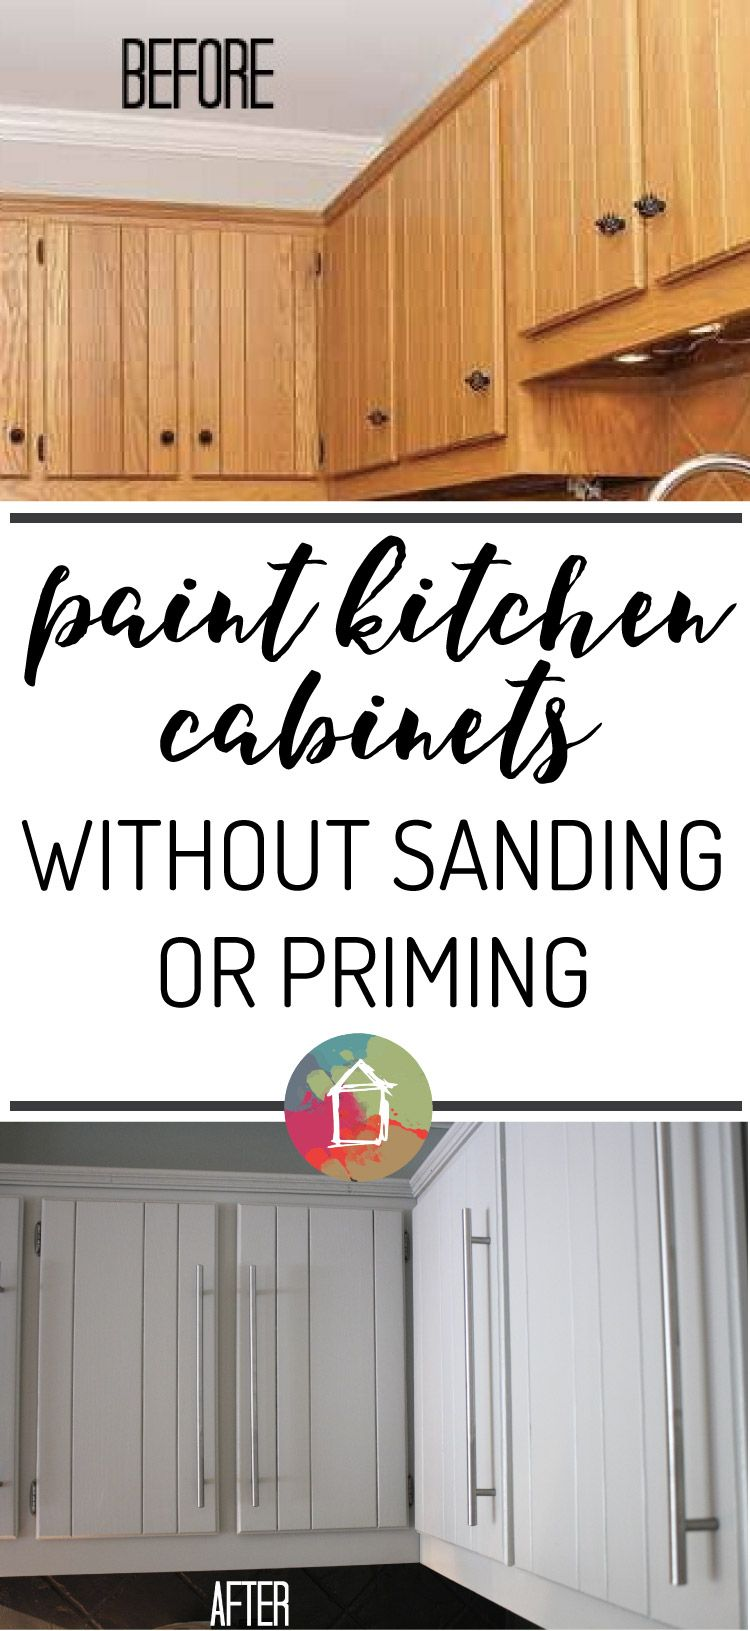 Kitchen Cabinets With No Doors How To Paint Kitchen Cabinets Without Sanding Or Priming